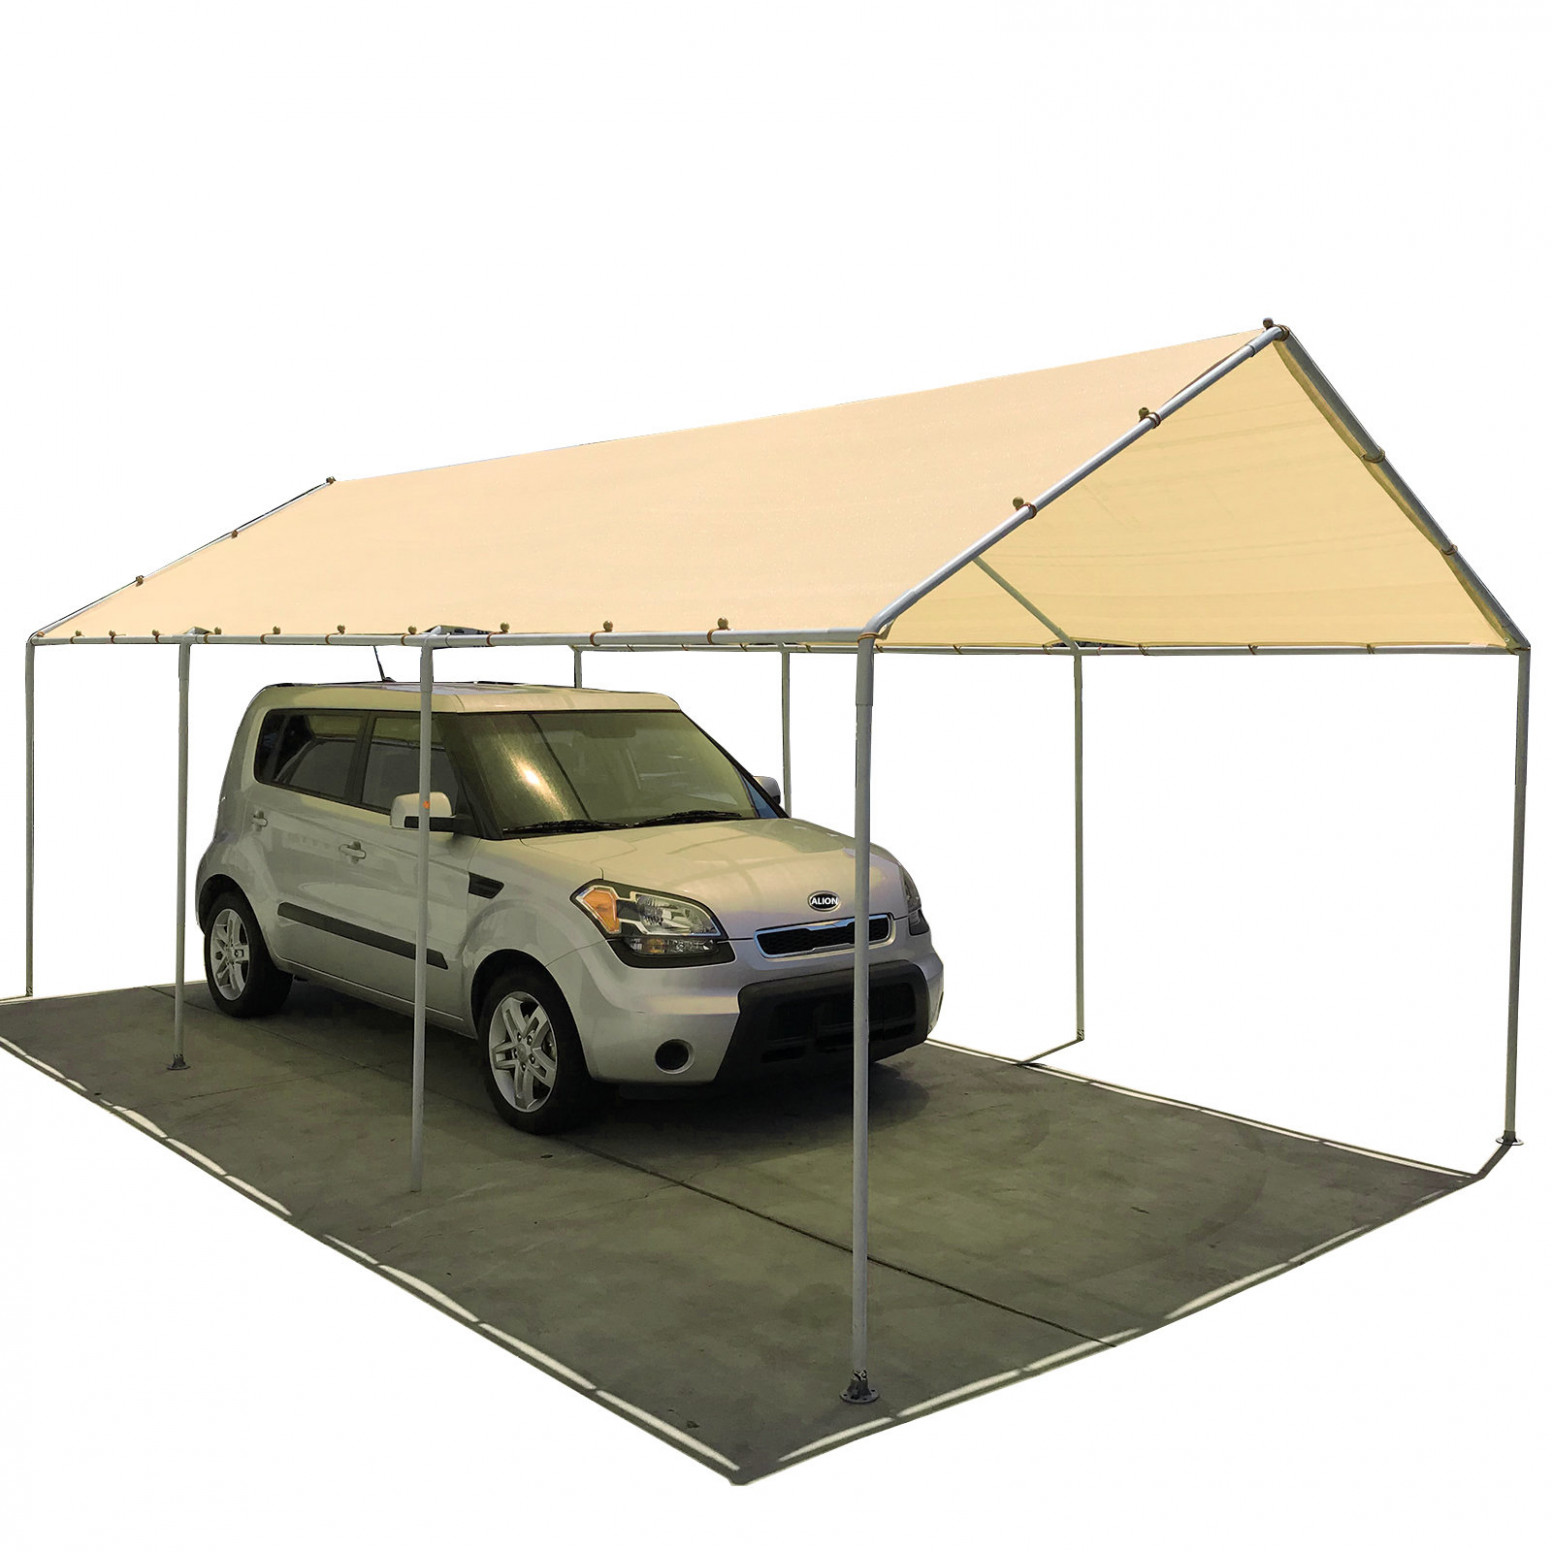 Carport Canopy Replacement Permeable Sun Shade Cover (Frame Not Included) Carport Canopy Replacement Parts